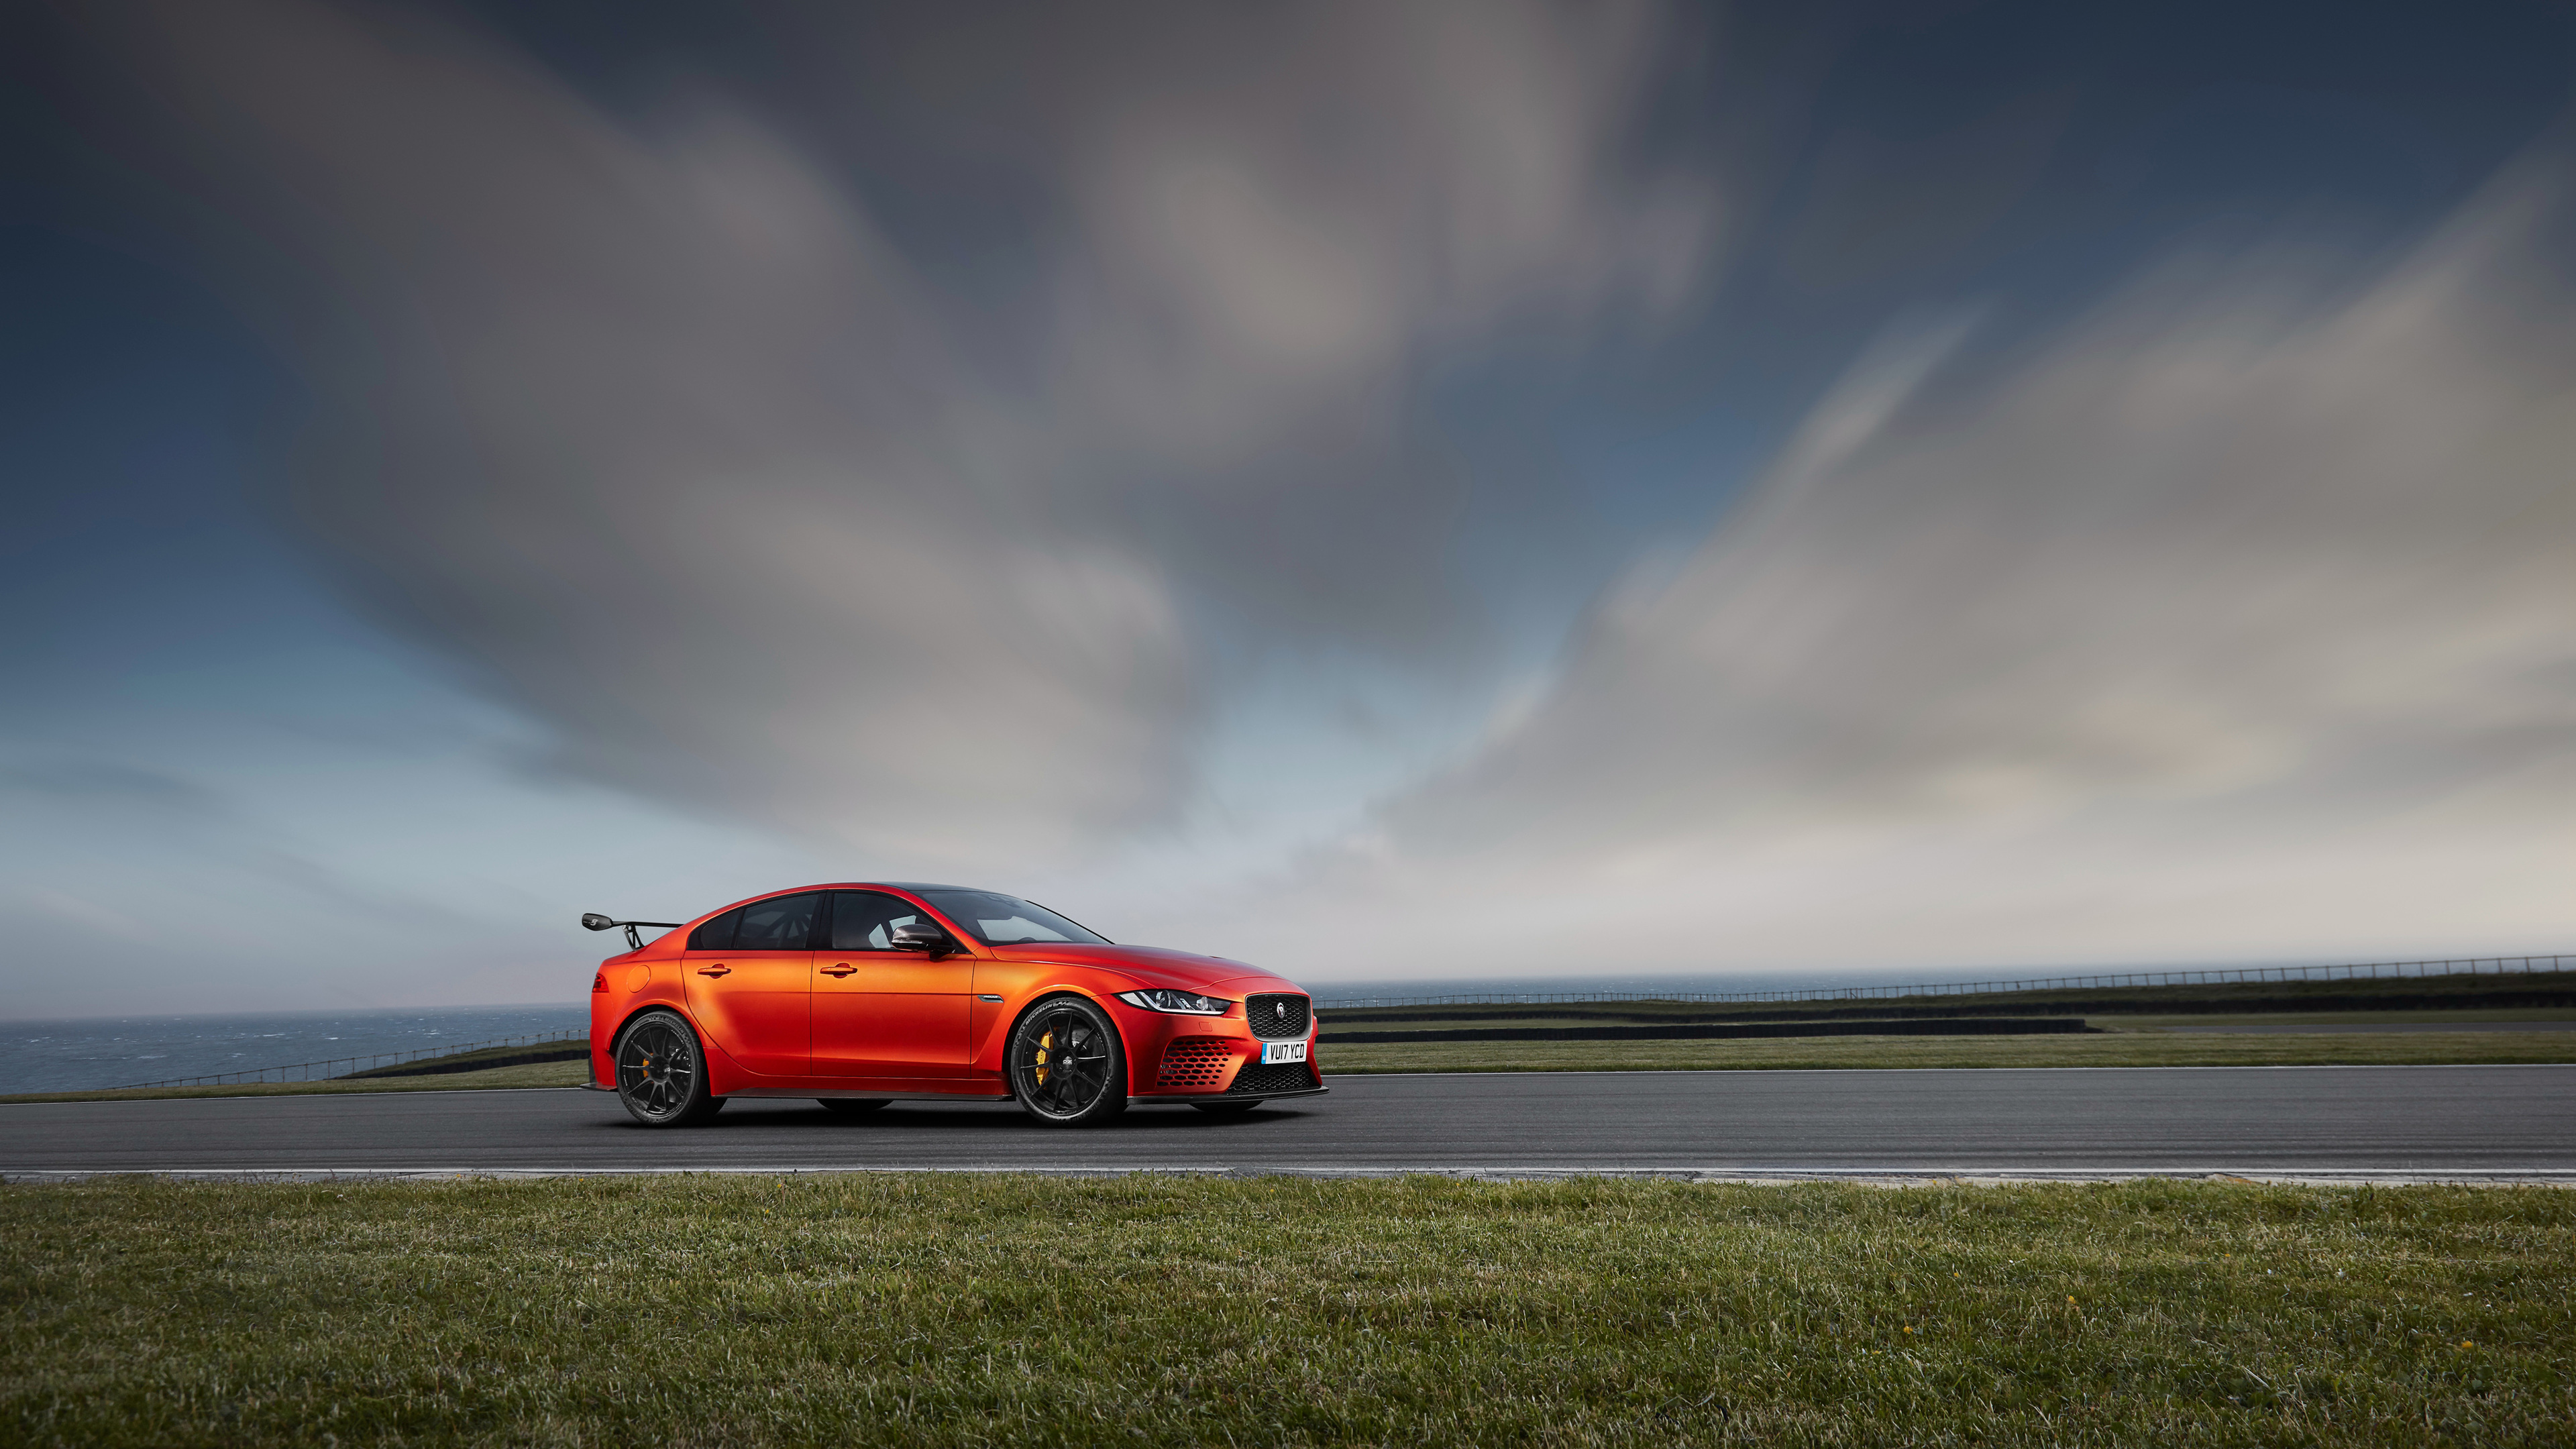 jaguar xe sv project 8 2018 4k 1539105559 - Jaguar XE SV Project 8 2018 4k - jaguar xe sv project 8 wallpapers, jaguar wallpapers, hd-wallpapers, cars wallpapers, 4k-wallpapers, 2018 cars wallpapers